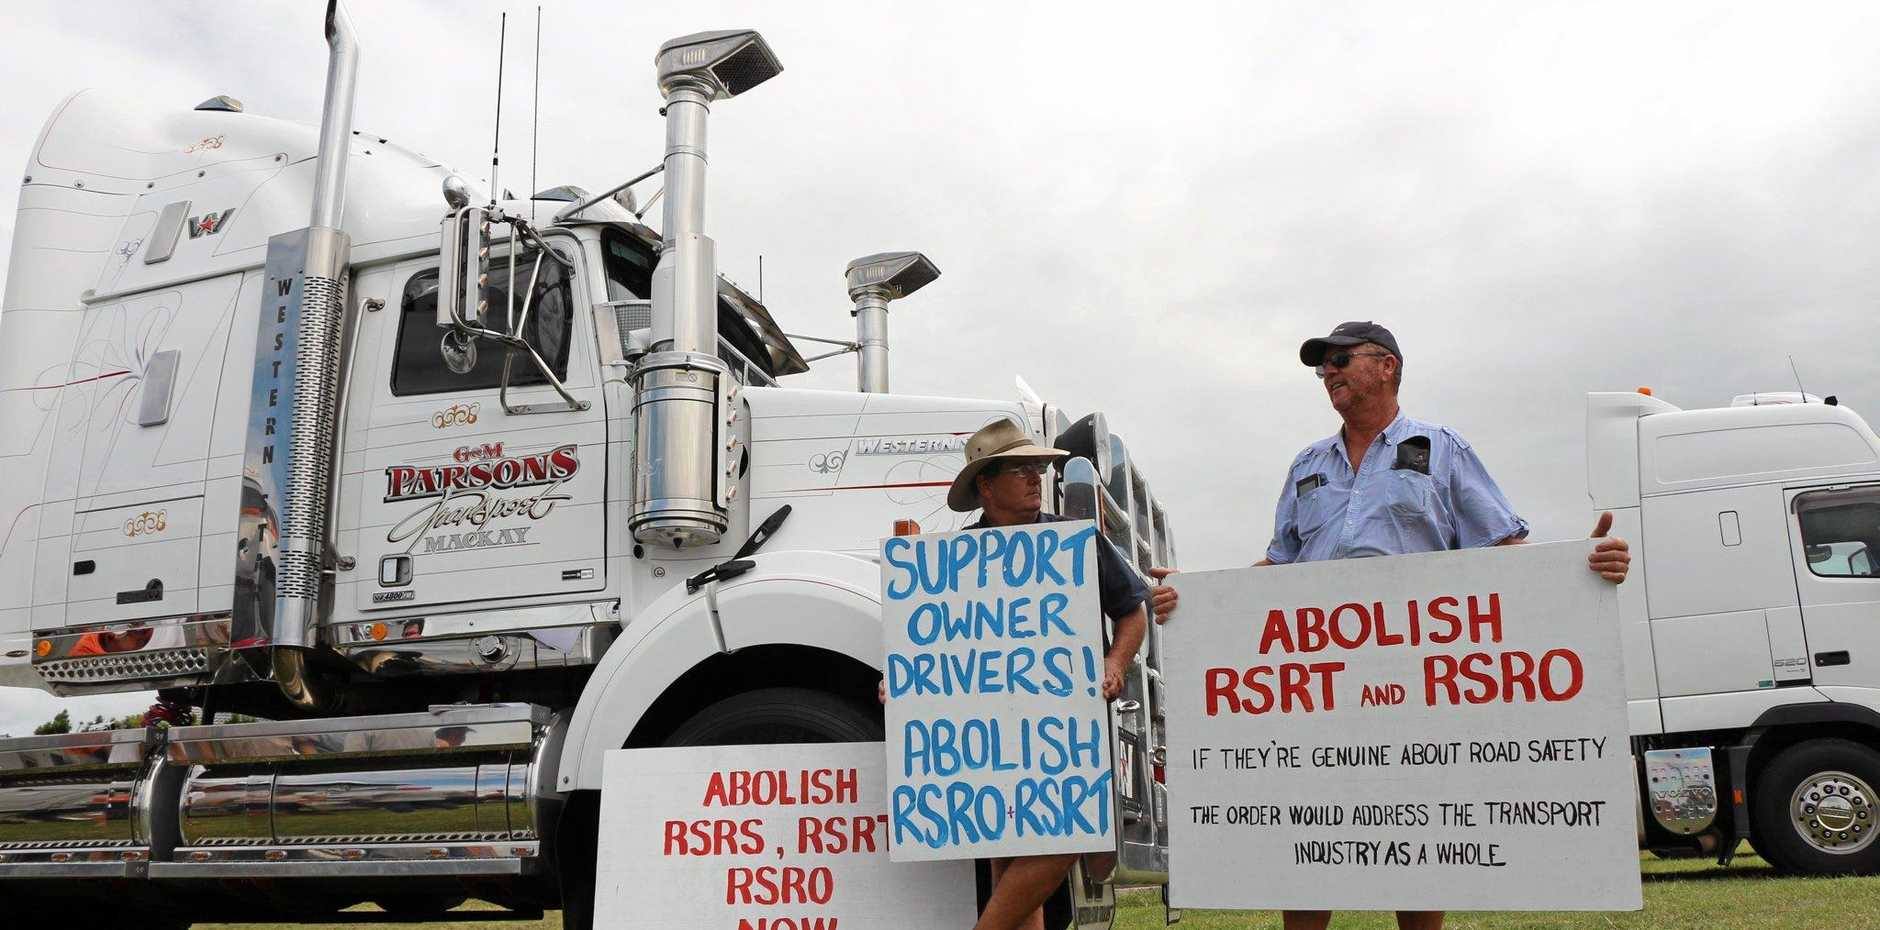 Owner-driver Kevin Fife and Deasherco Owner-driver Dean Baldock at yesterday mornings rally in support of abolishing the RSRT and RSRO.  Photo Daniel Harkin / Daily Mercury